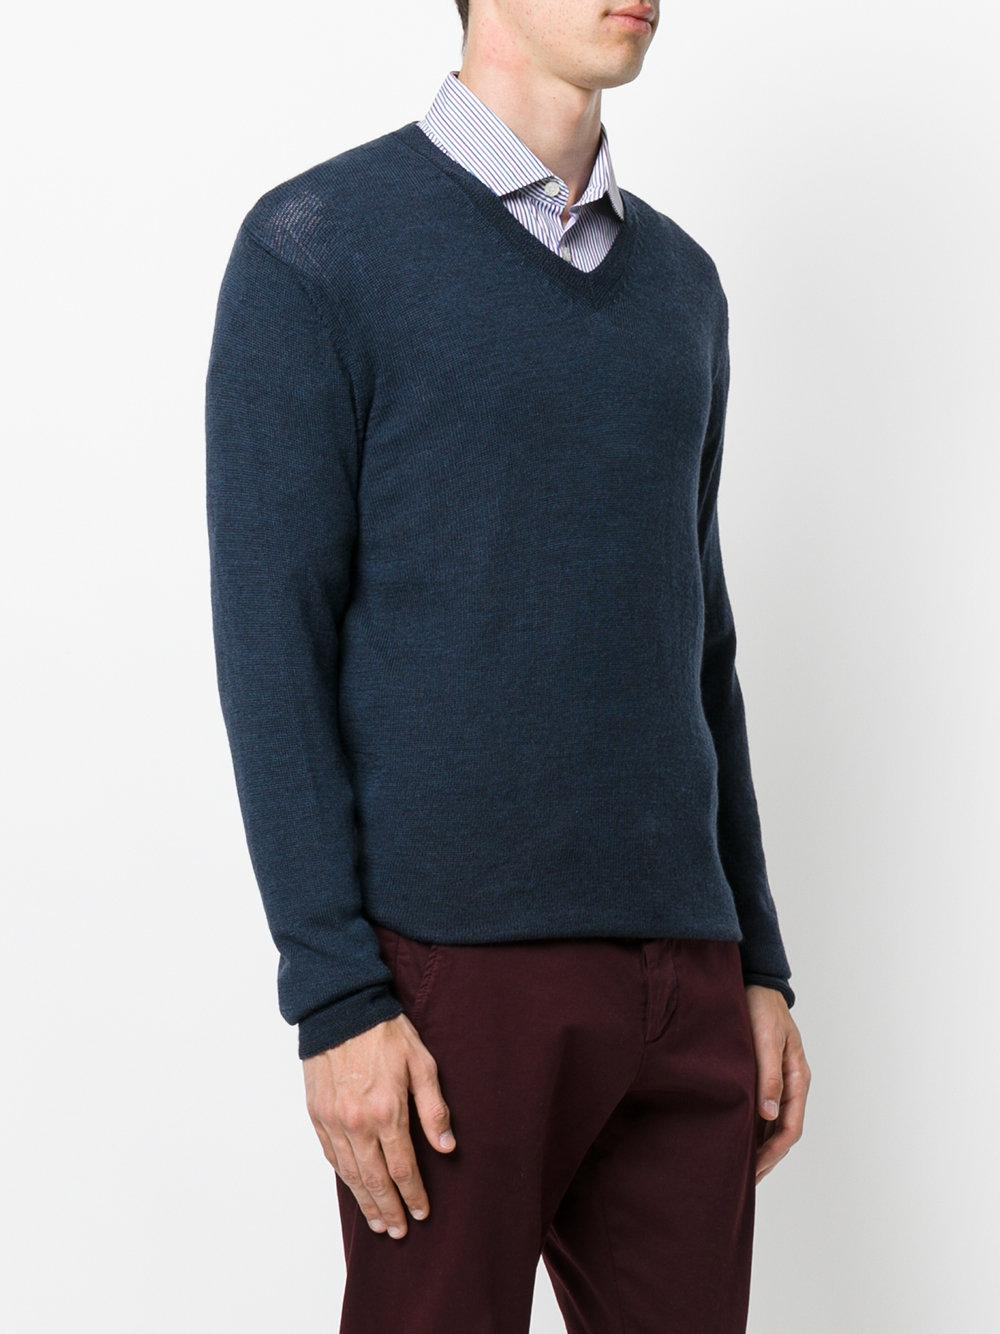 Etro Wool Classic V Neck Sweater in Blue for Men